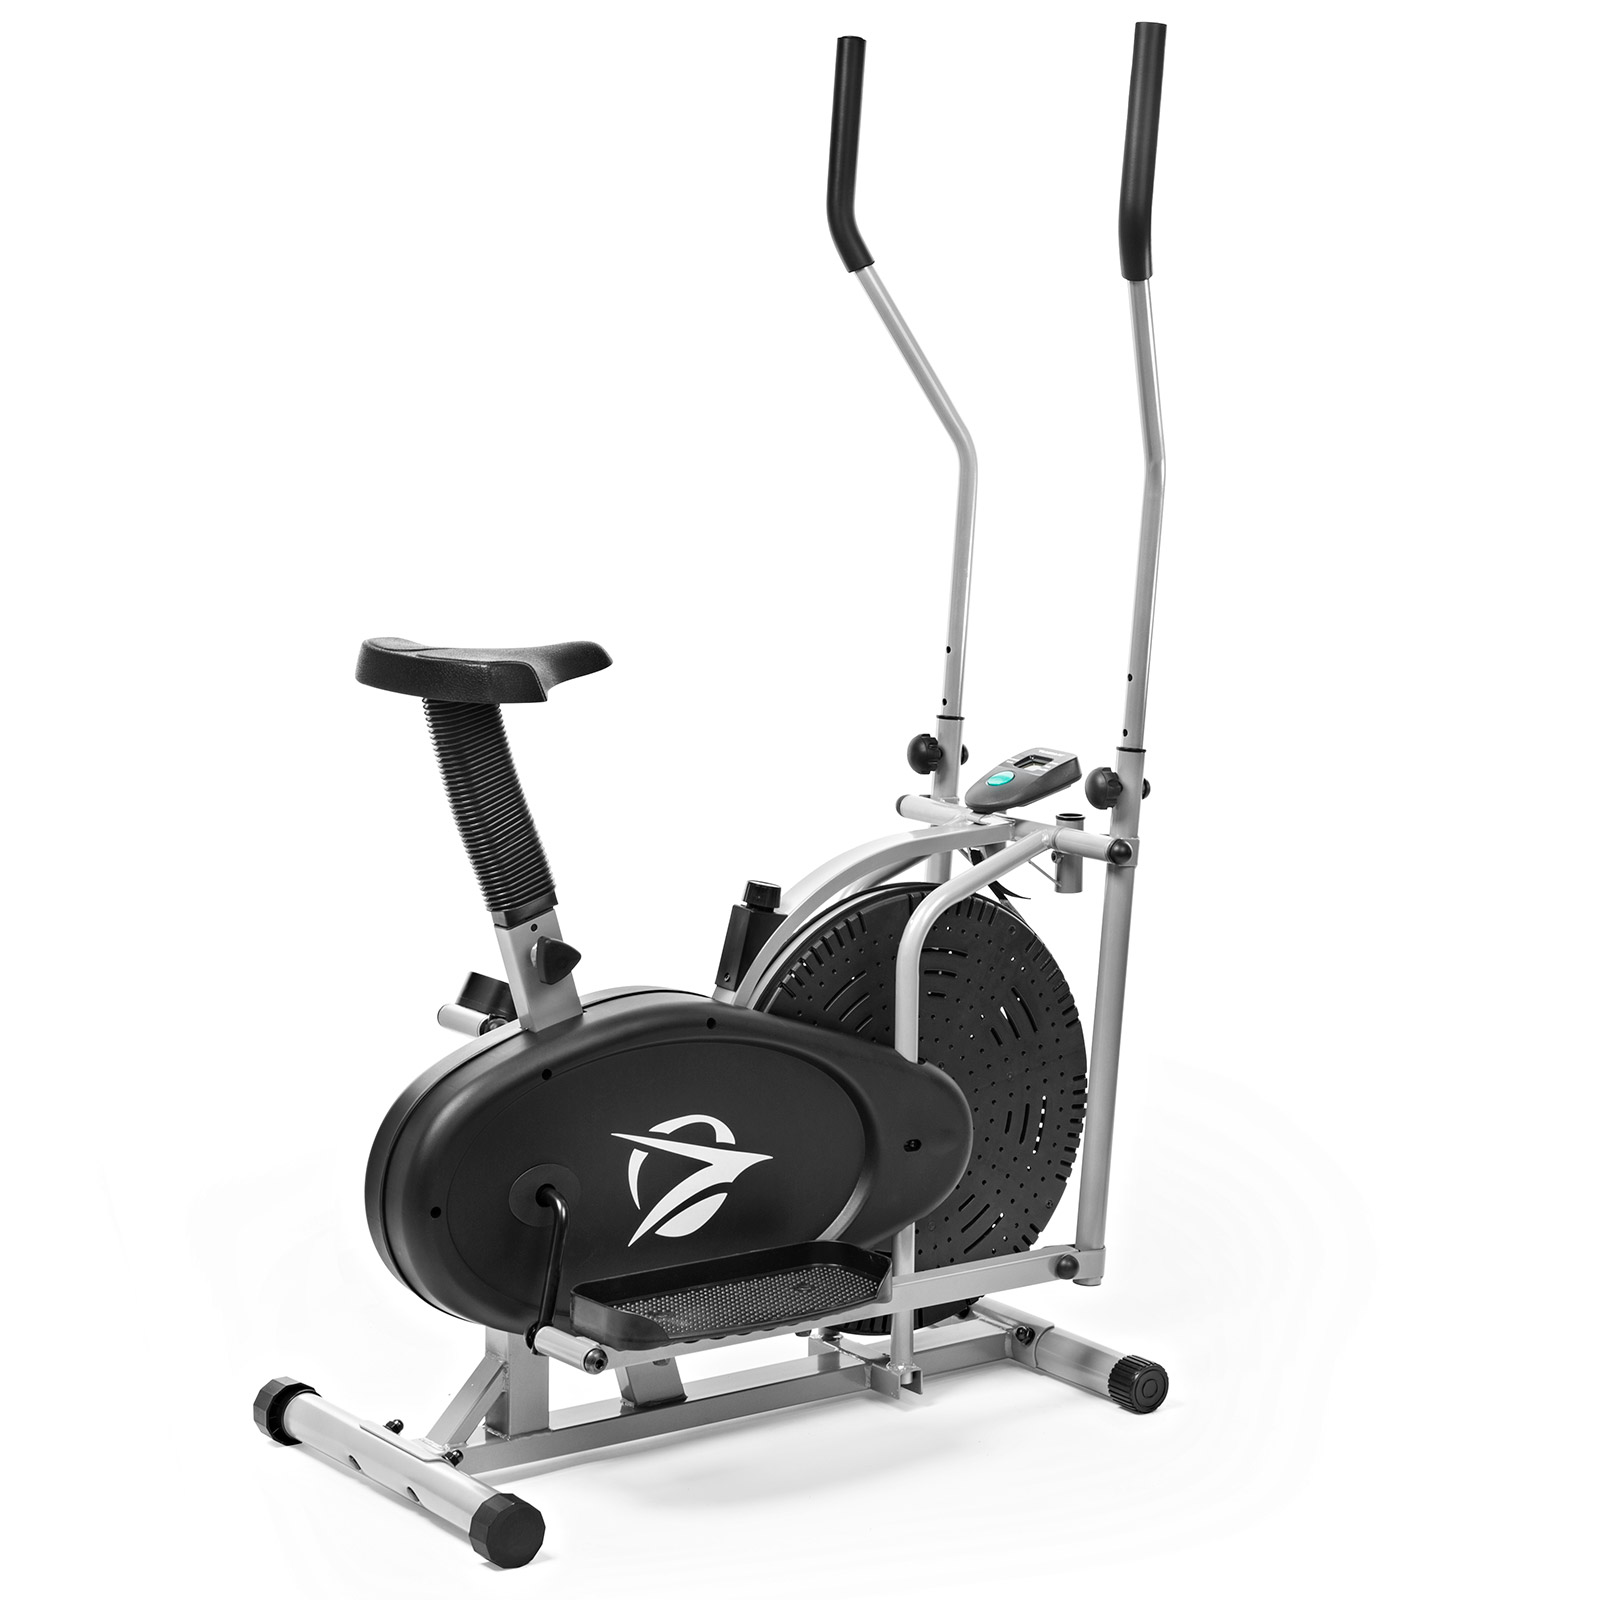 Plasma Fit Elliptical Machine Trainer 2 in 1 Exercise Bike Cardio Fitness Home Gym Workout Equipment